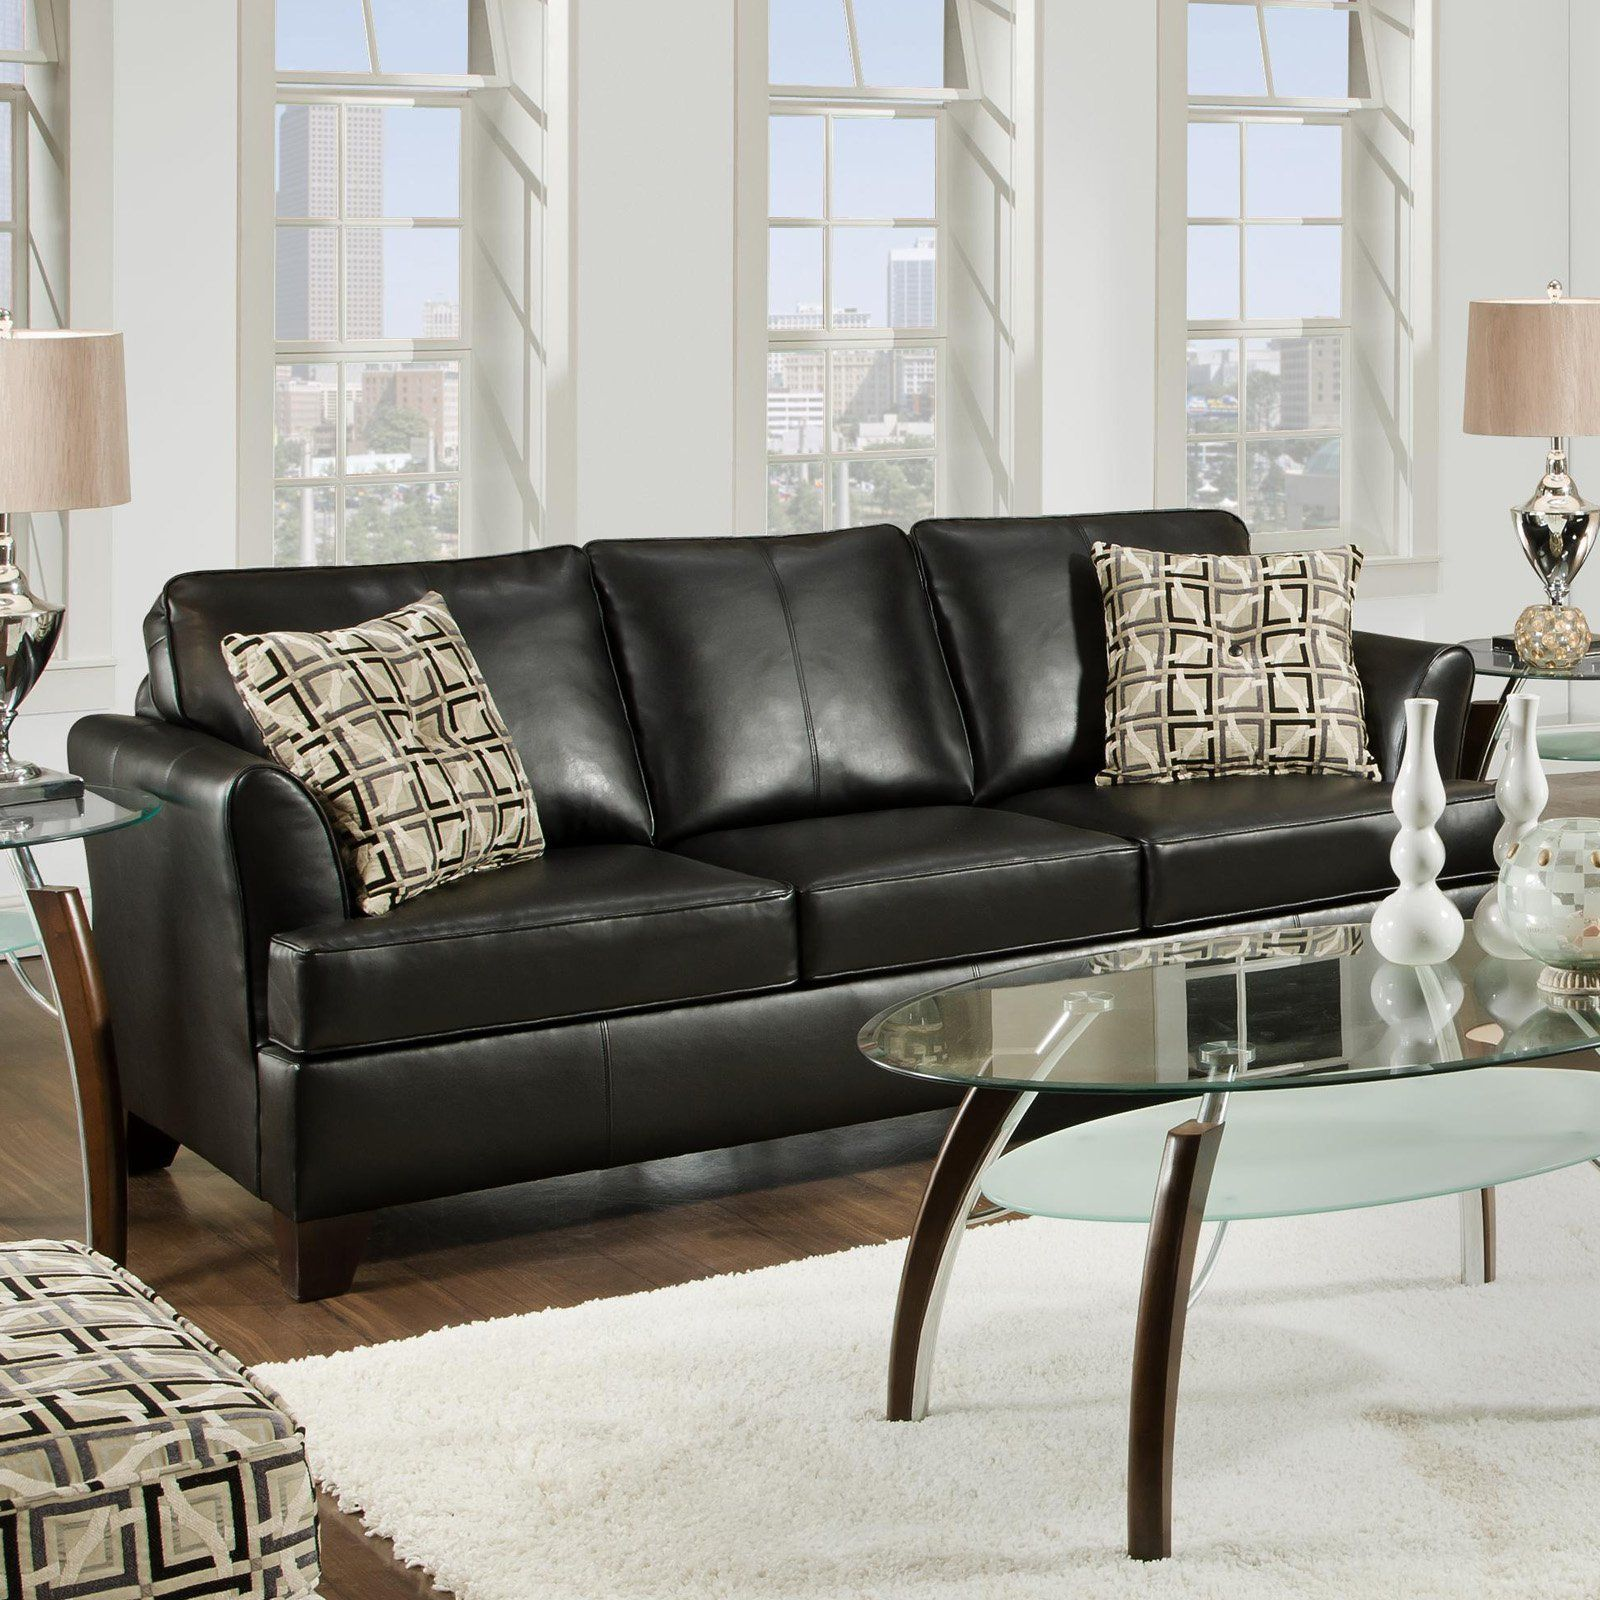 Simmons Urban yx Leather Sofa with Accent Pillows